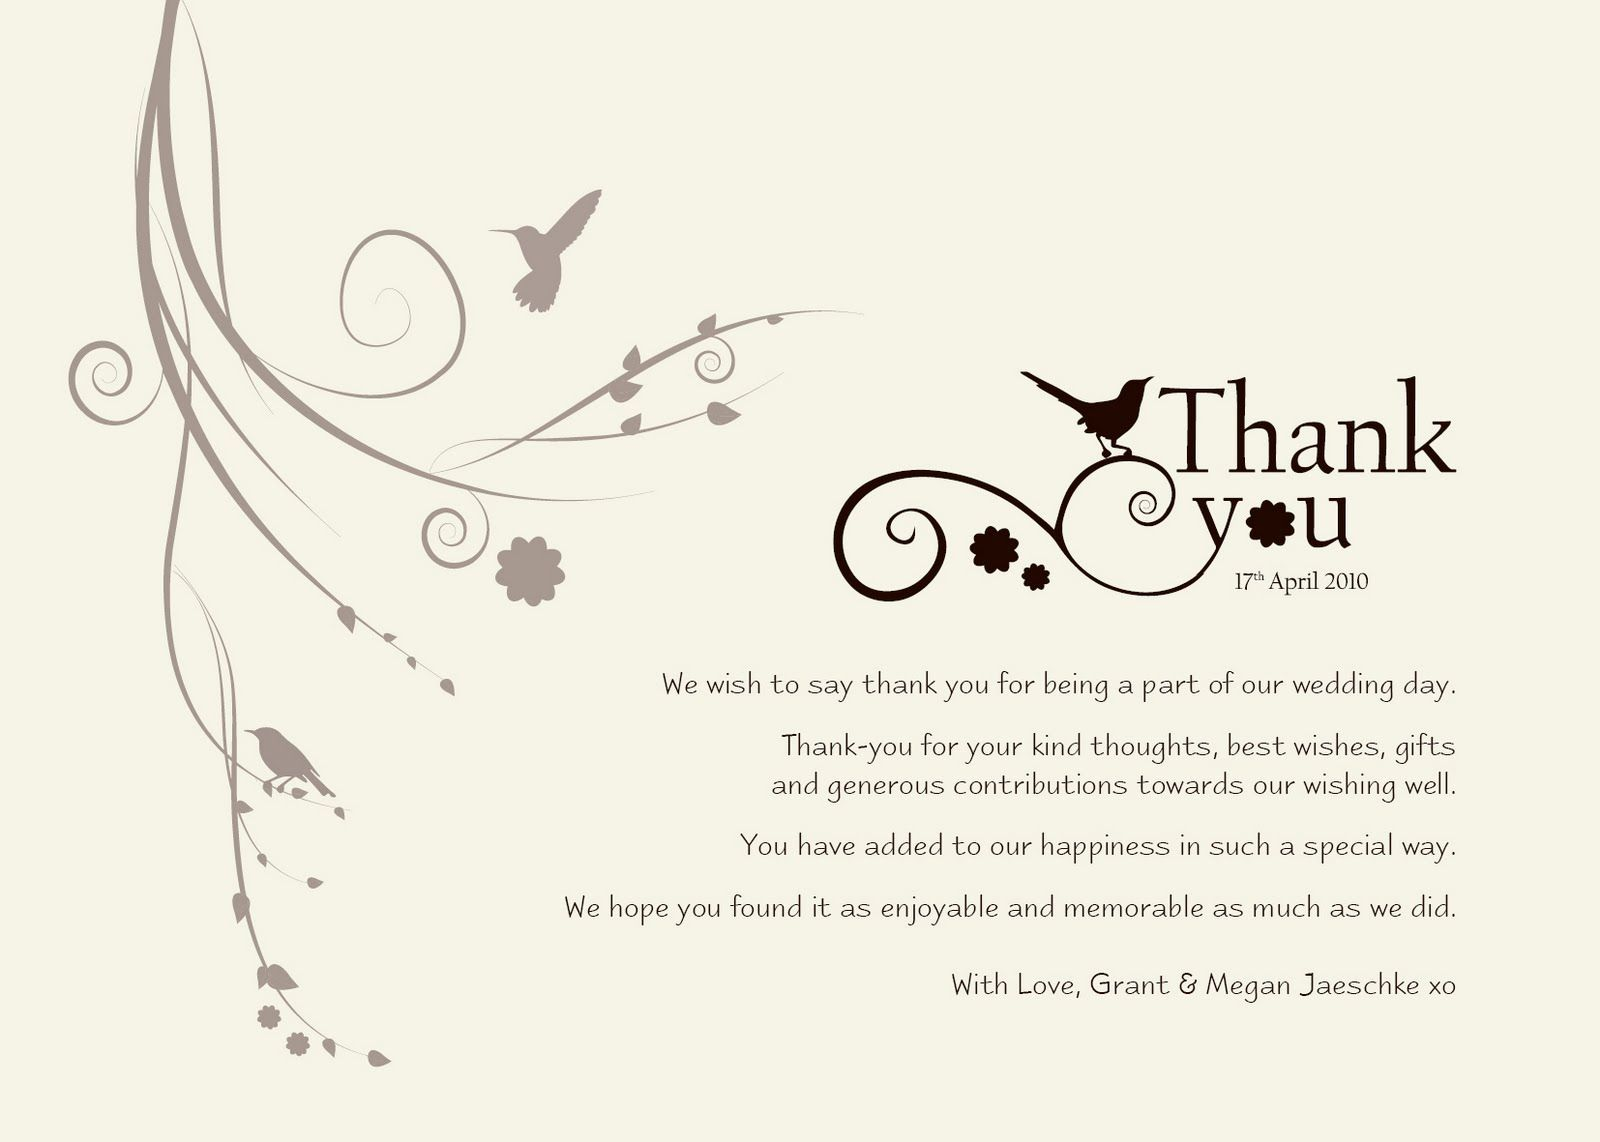 Wedding Thank You Templates Free – Writing Wedding Thank You Cards Samples